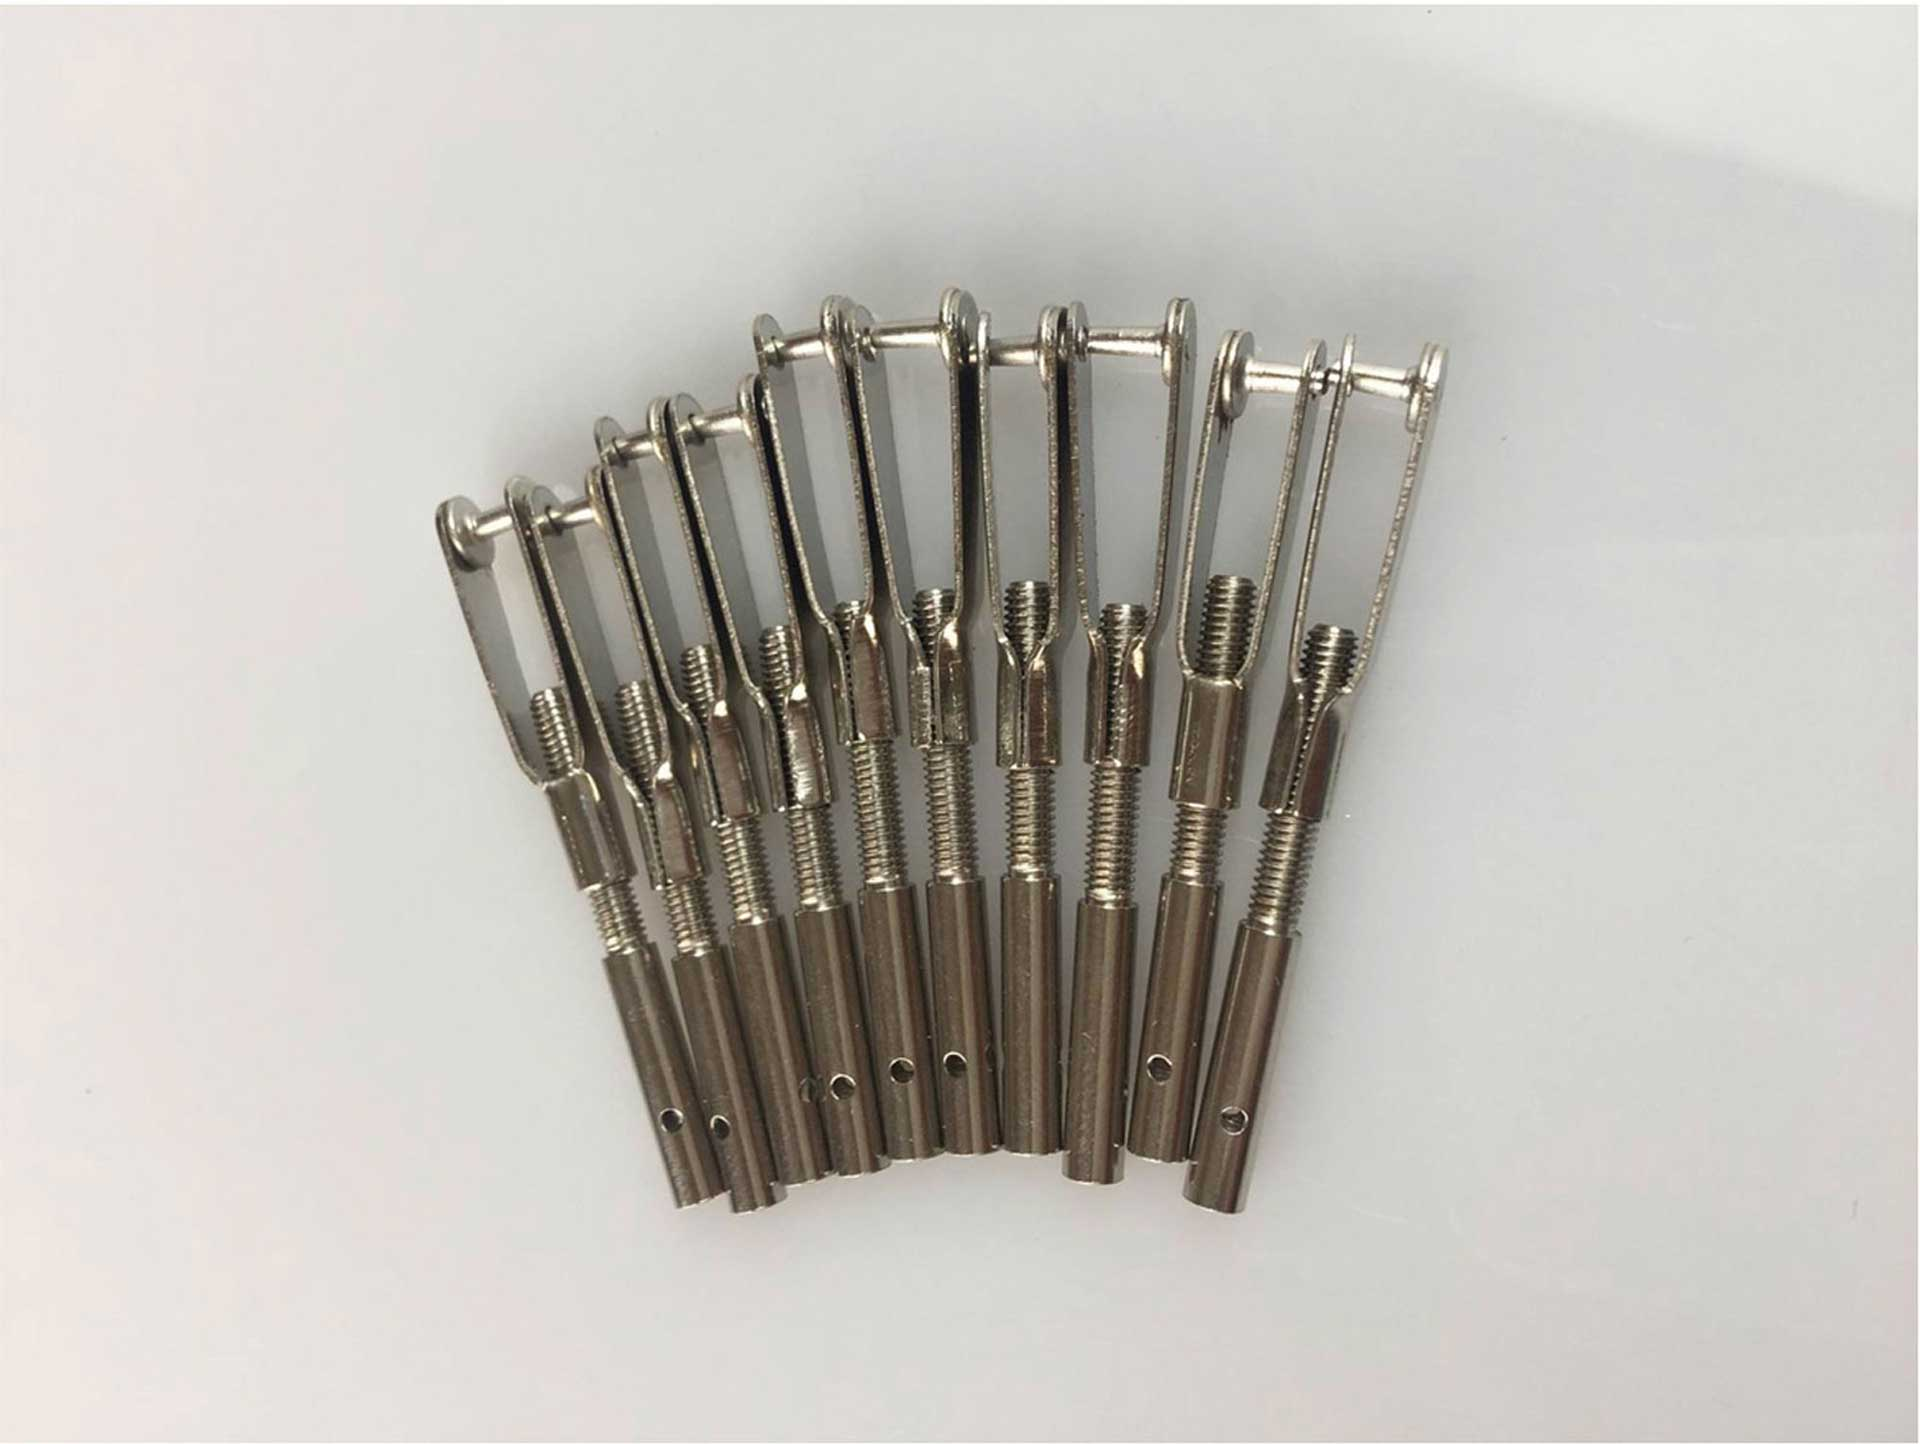 VALUEPLANES FORK HEAD AND SOLDER SLEEVE M3 10PCS.